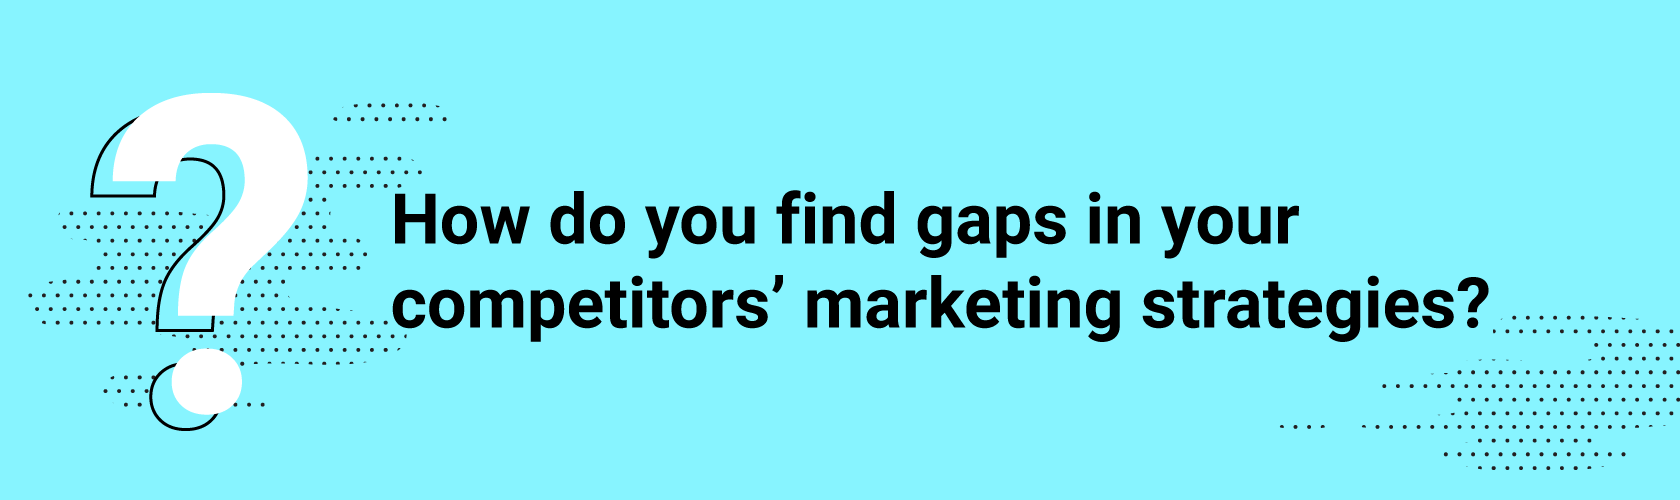 How do you find gaps in your competitors' marketing strategies?